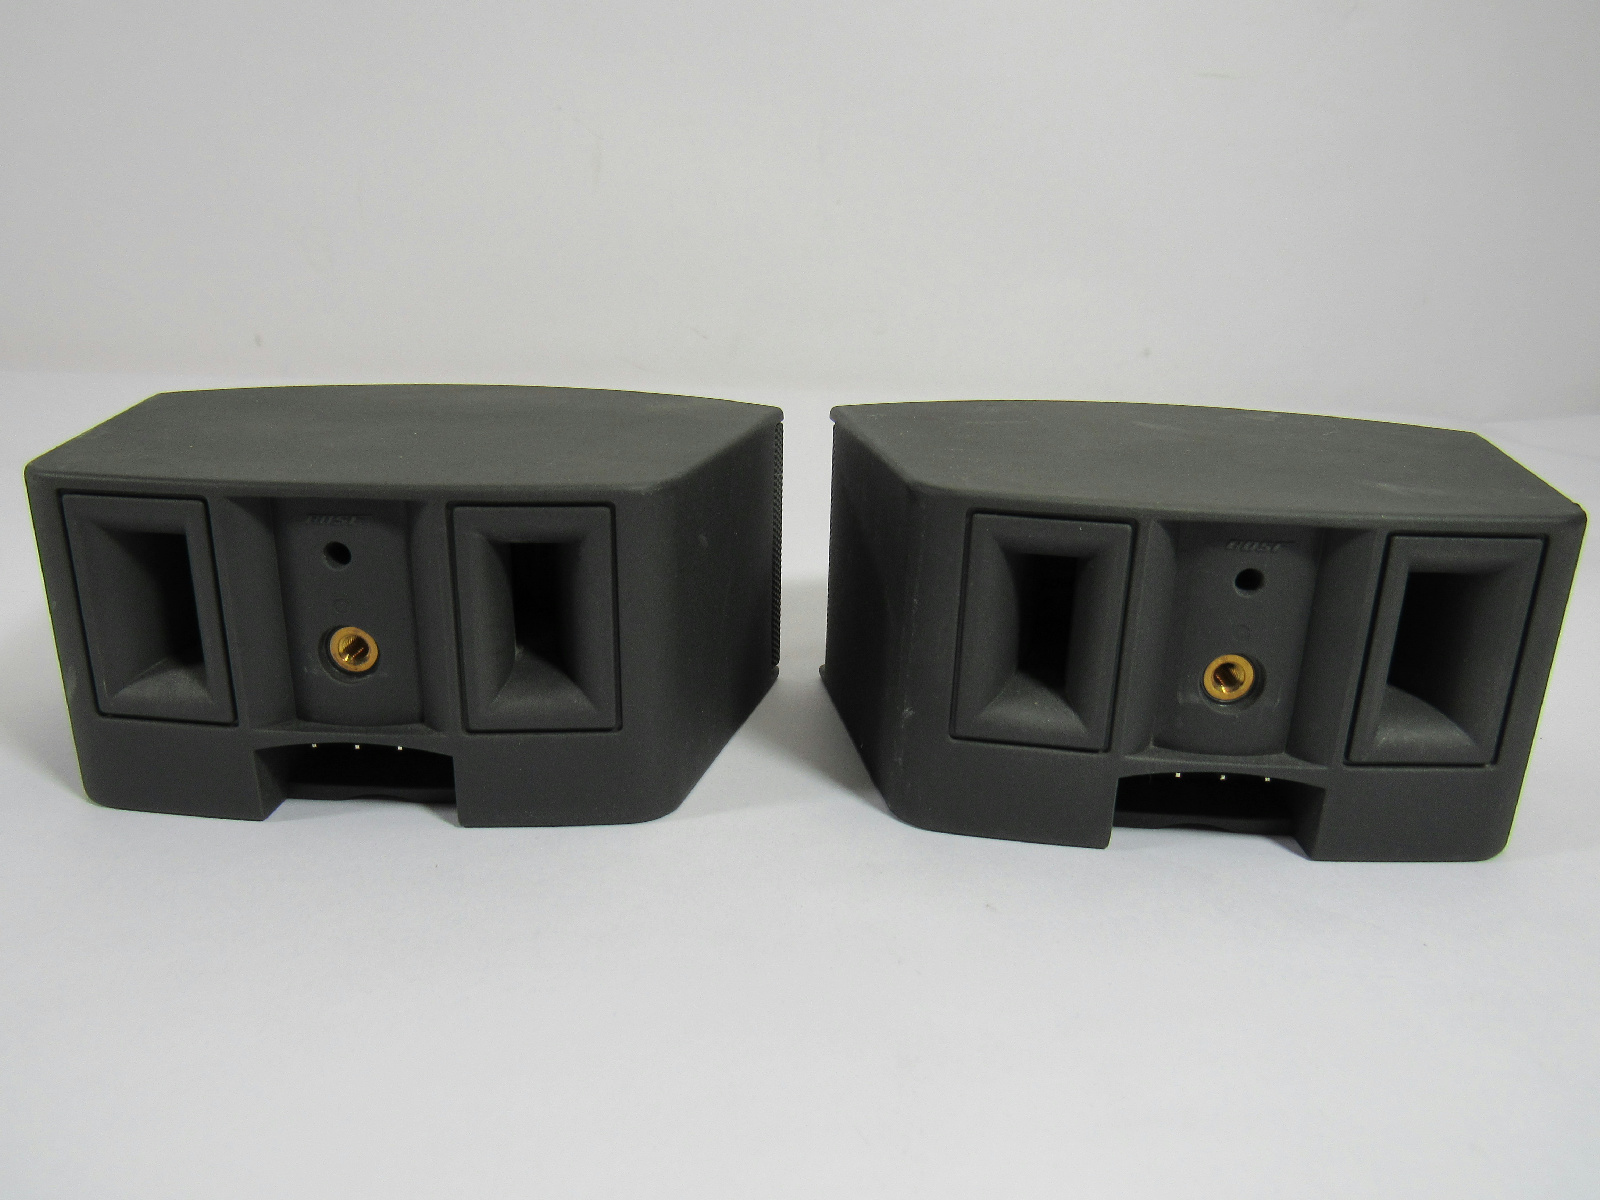 bose gemstone speakers for av321 3 2 1 gs gsx cinemate